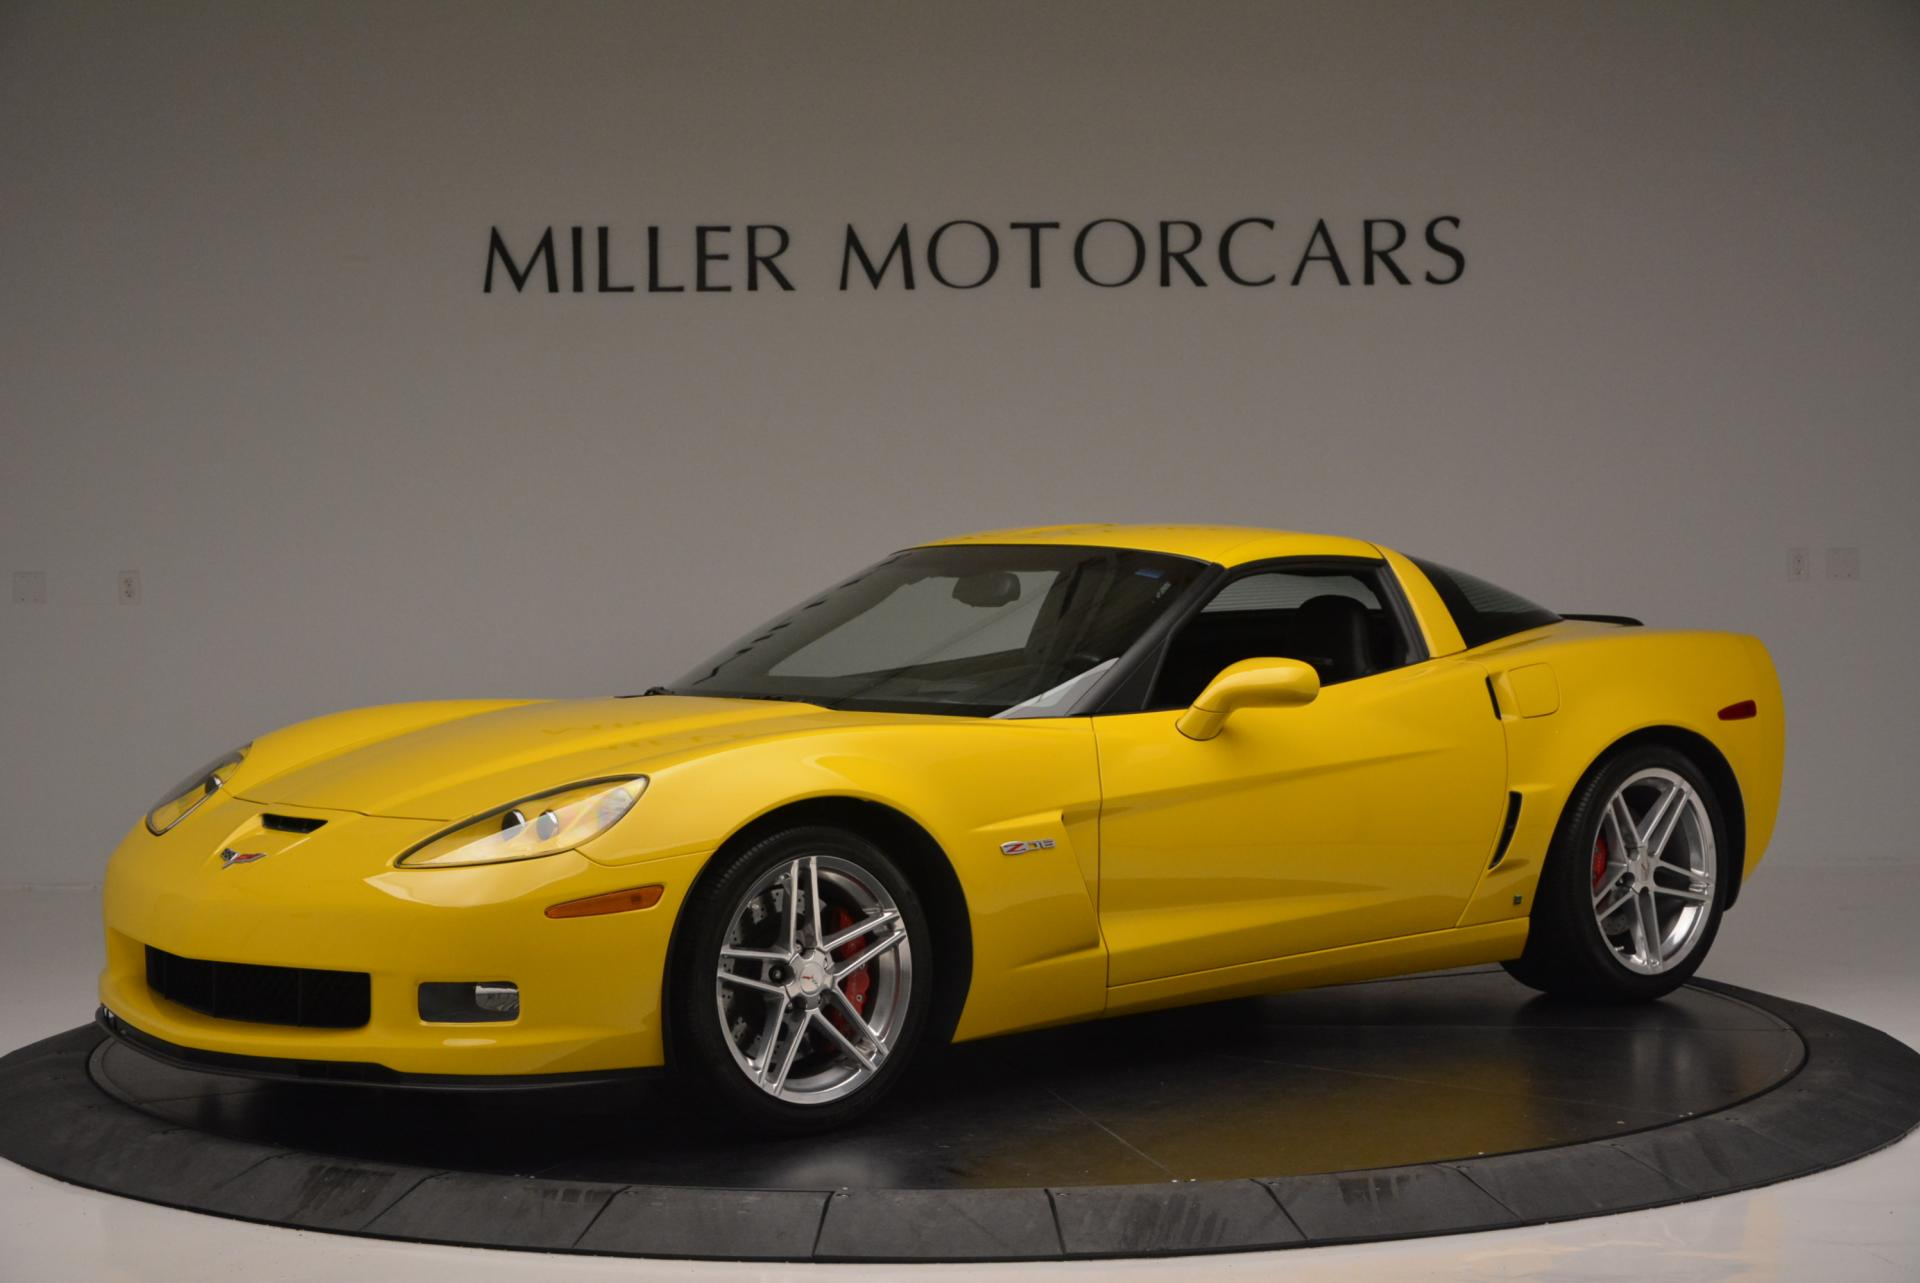 Used 2006 Chevrolet Corvette Z06 Hardtop for sale Sold at Bentley Greenwich in Greenwich CT 06830 1